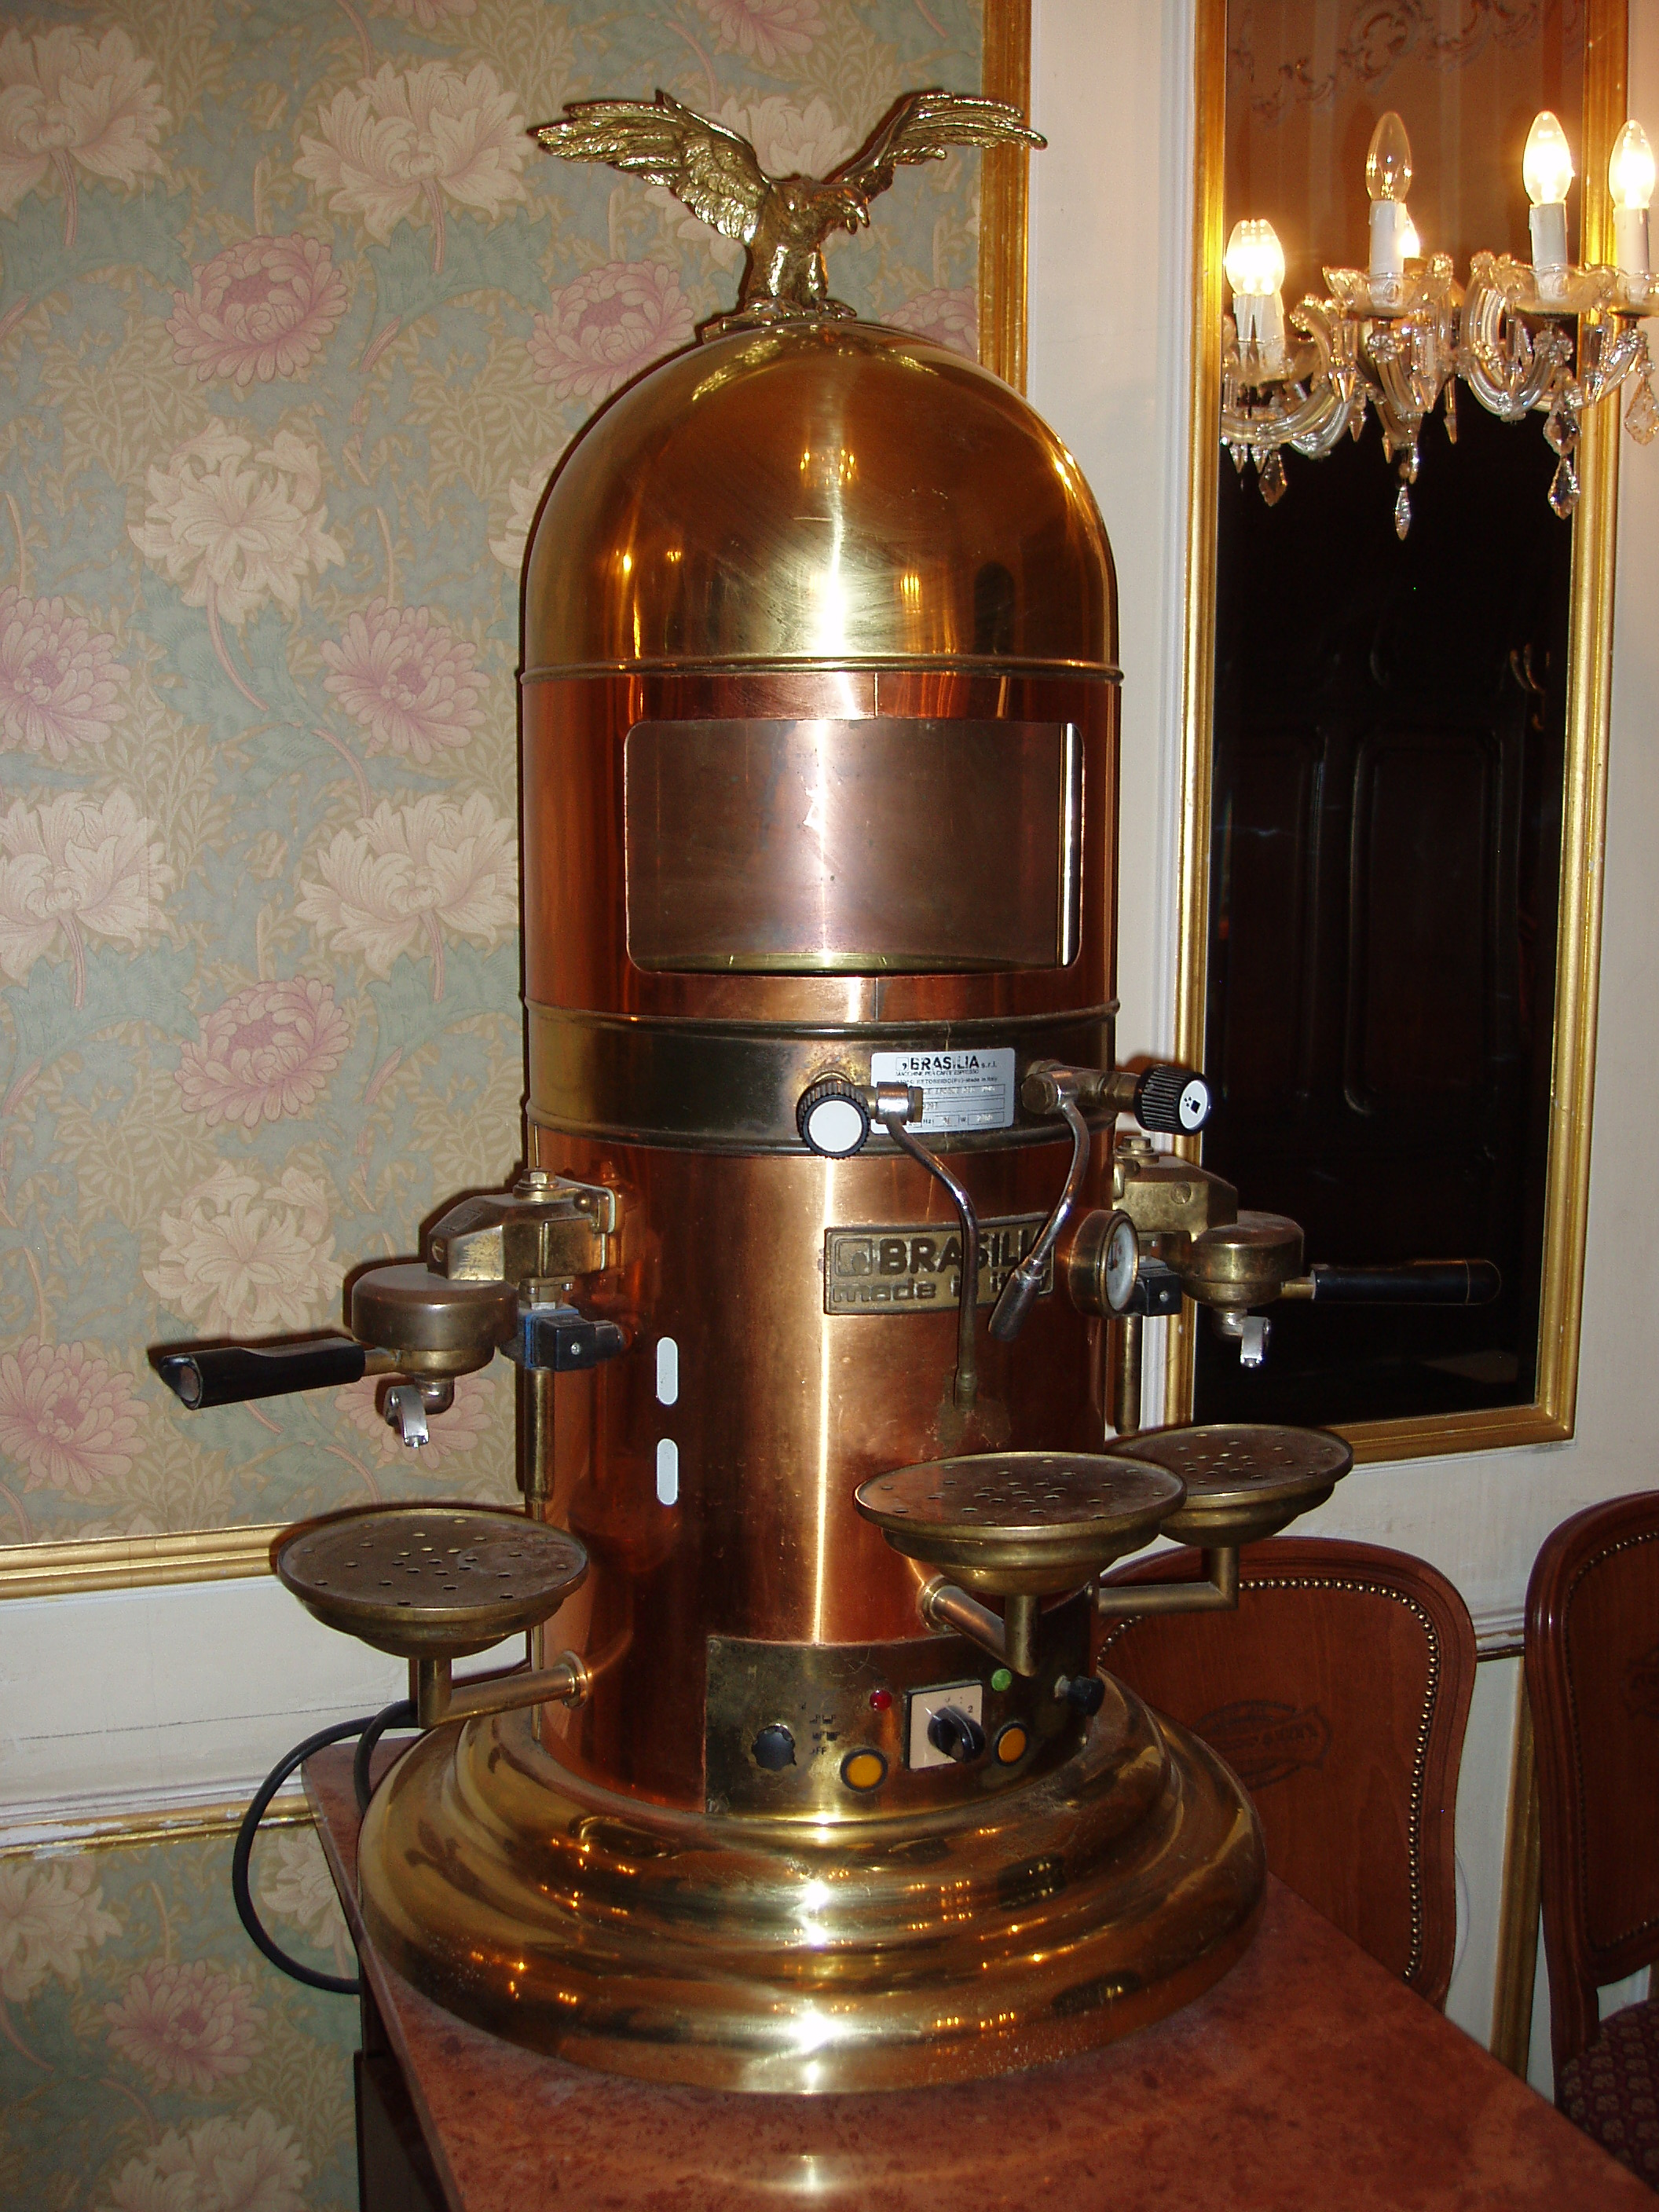 An antique espresso maker in Cafe' Gerbeaud.